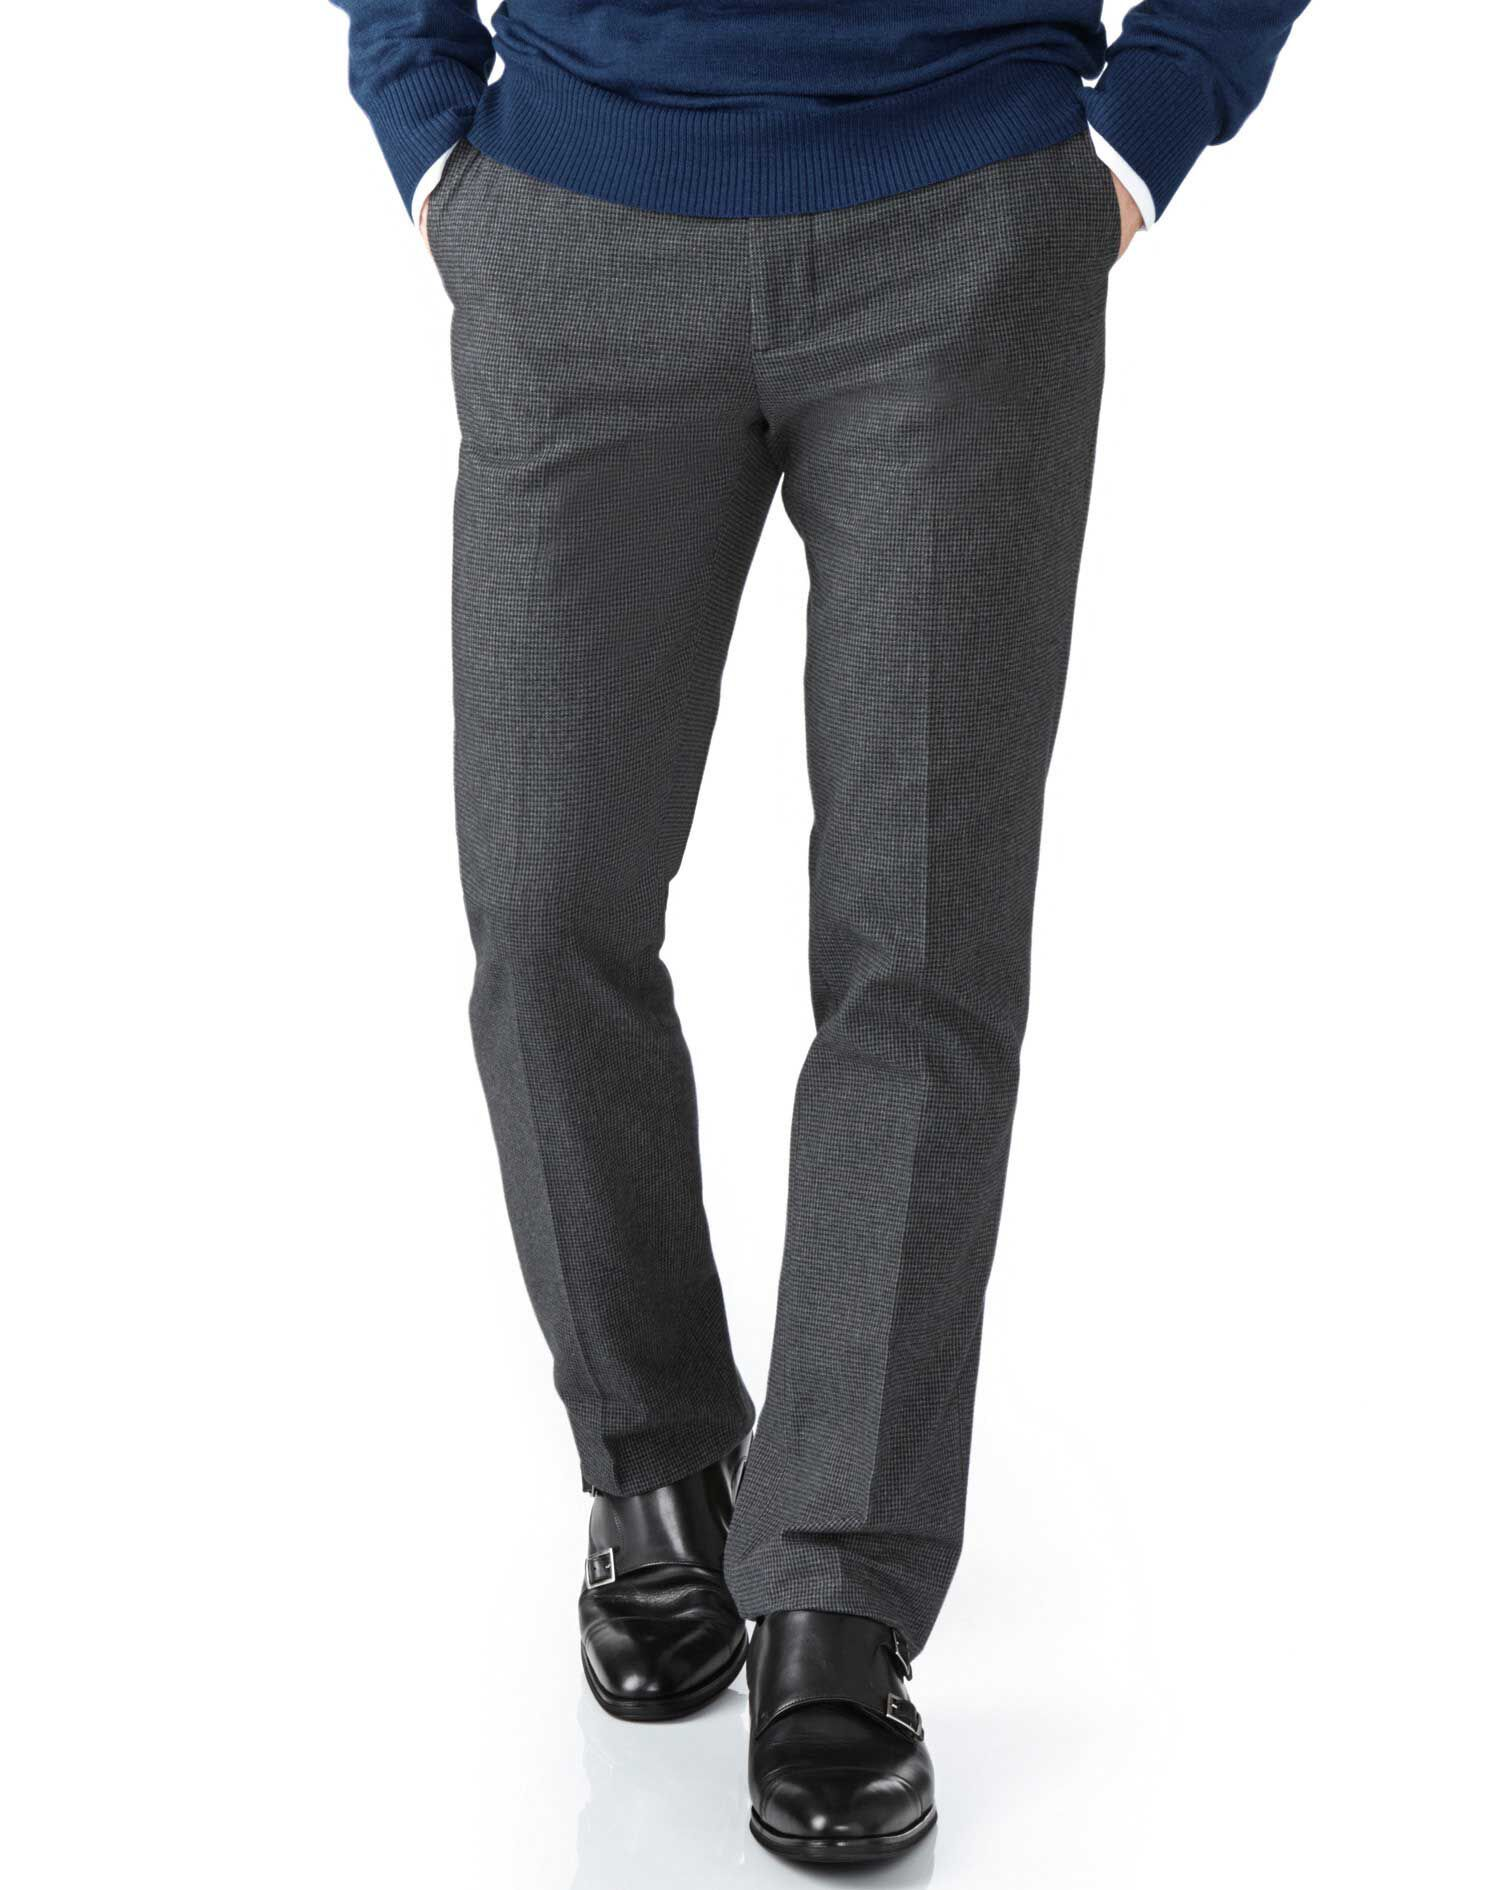 Grey Classic Fit Cotton Flannel Trouser Size W34 L32 by Charles Tyrwhitt